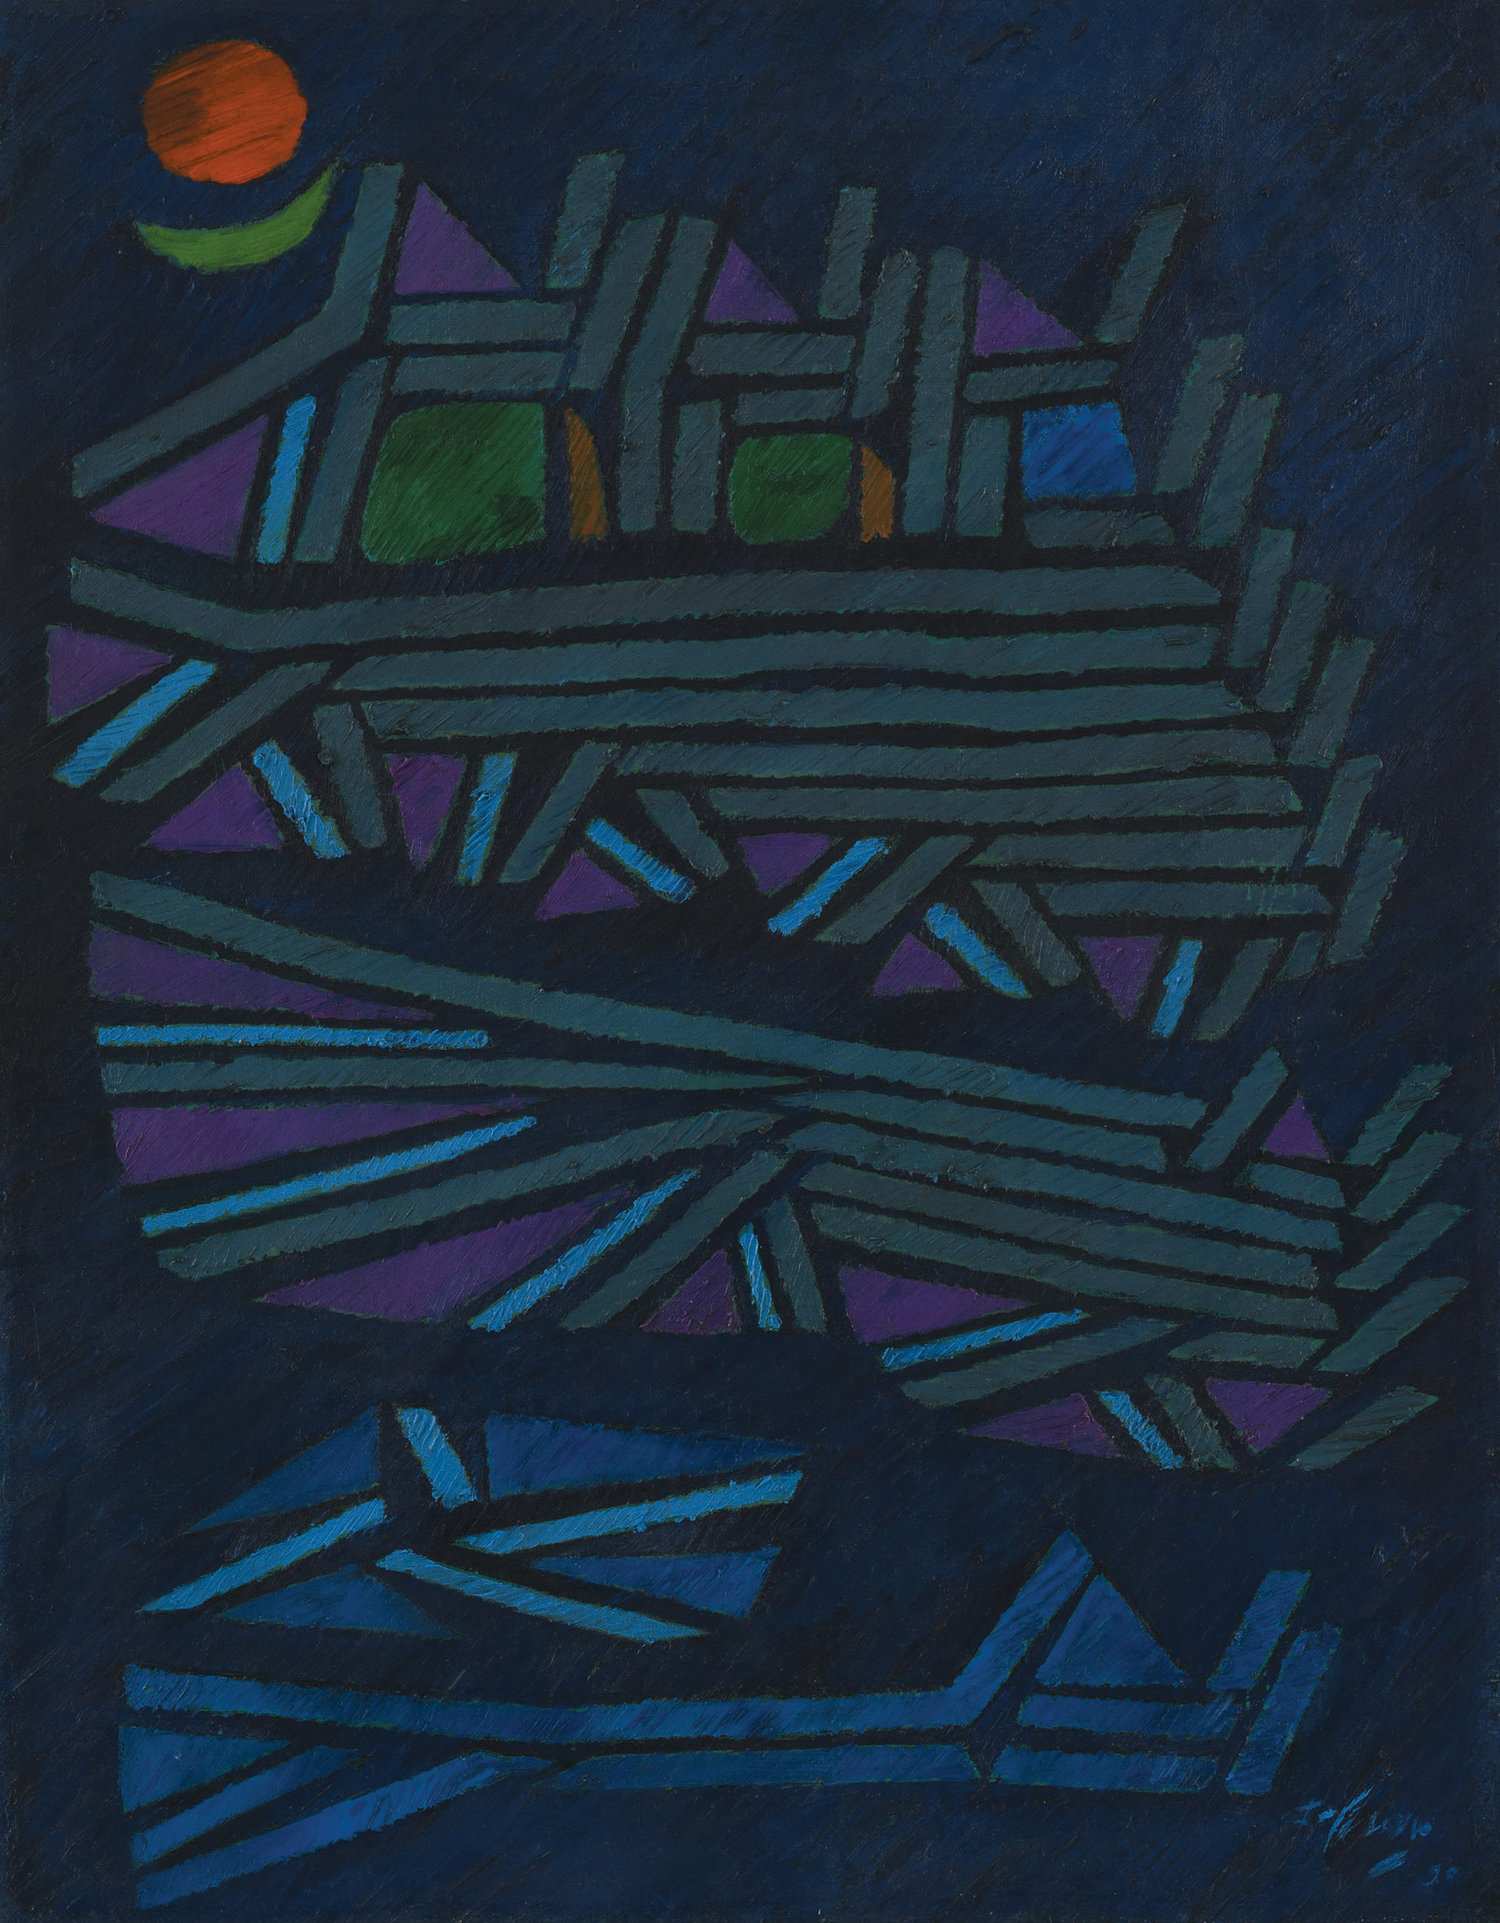 Fadjar Sidik, Space Dynamics, oil on canvas, 90 x 70 cm, 1990